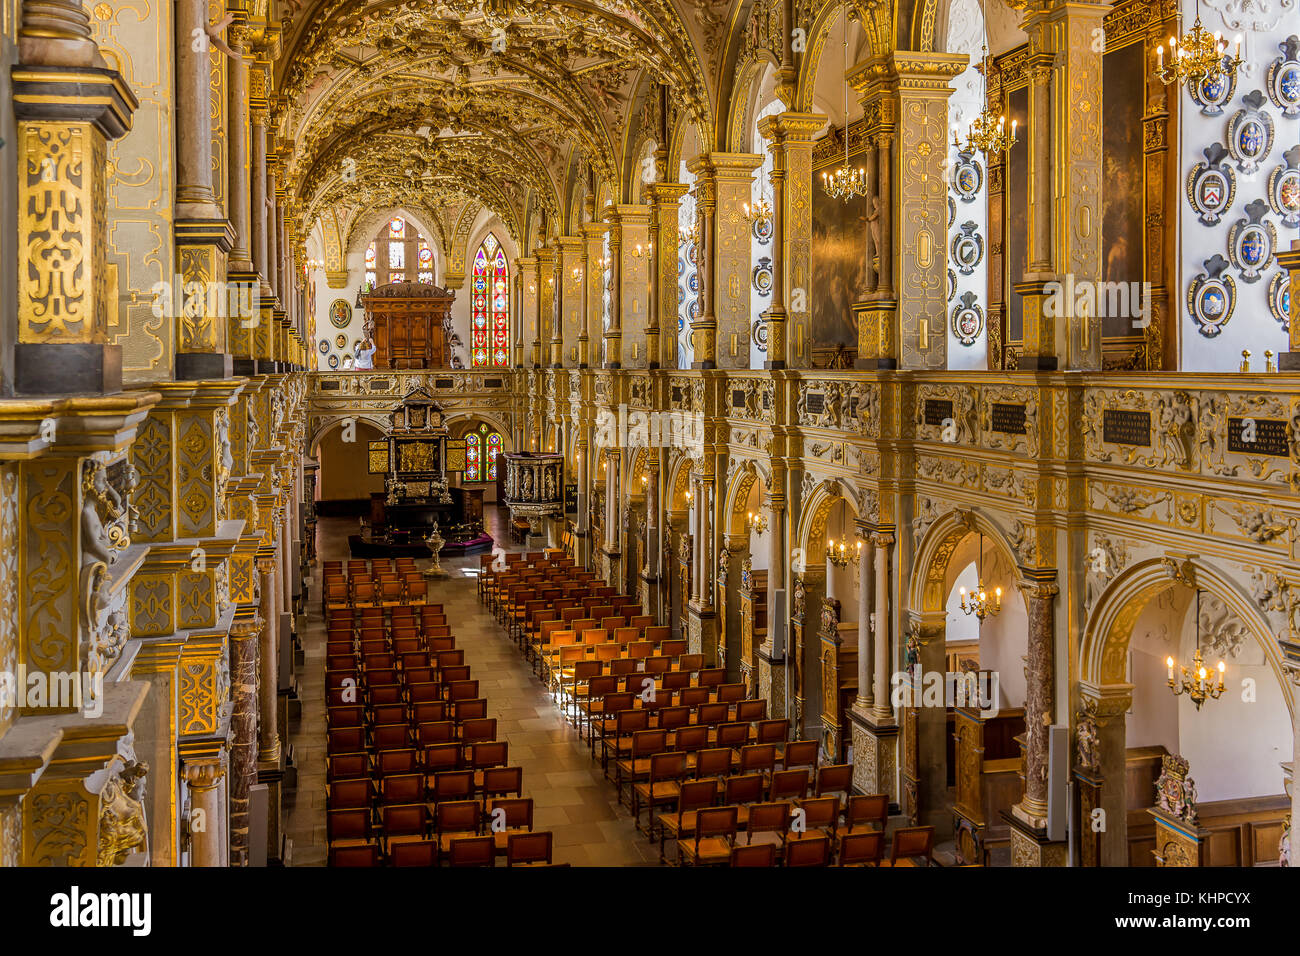 Interior of the church at Rosenborg castle, Hillerod, Denmark, August 6, 2017 - Stock Image